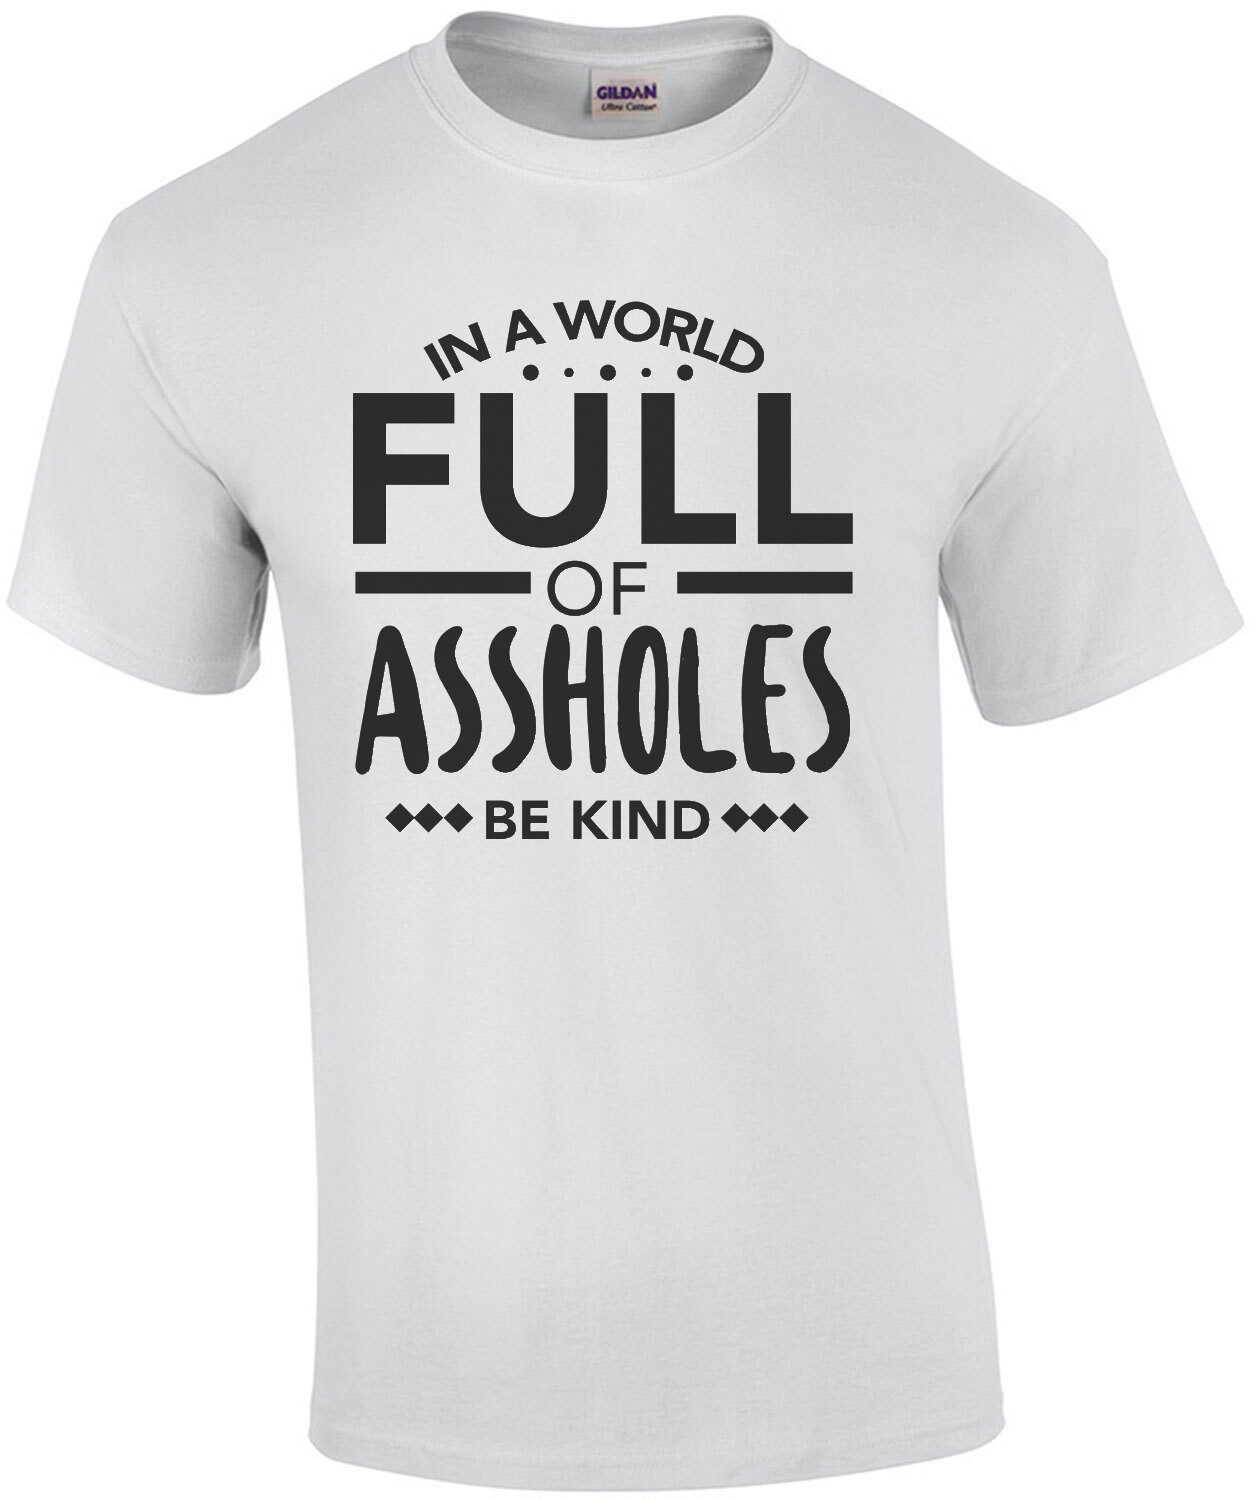 In a world full of assholes - be kind - funny t-shirt